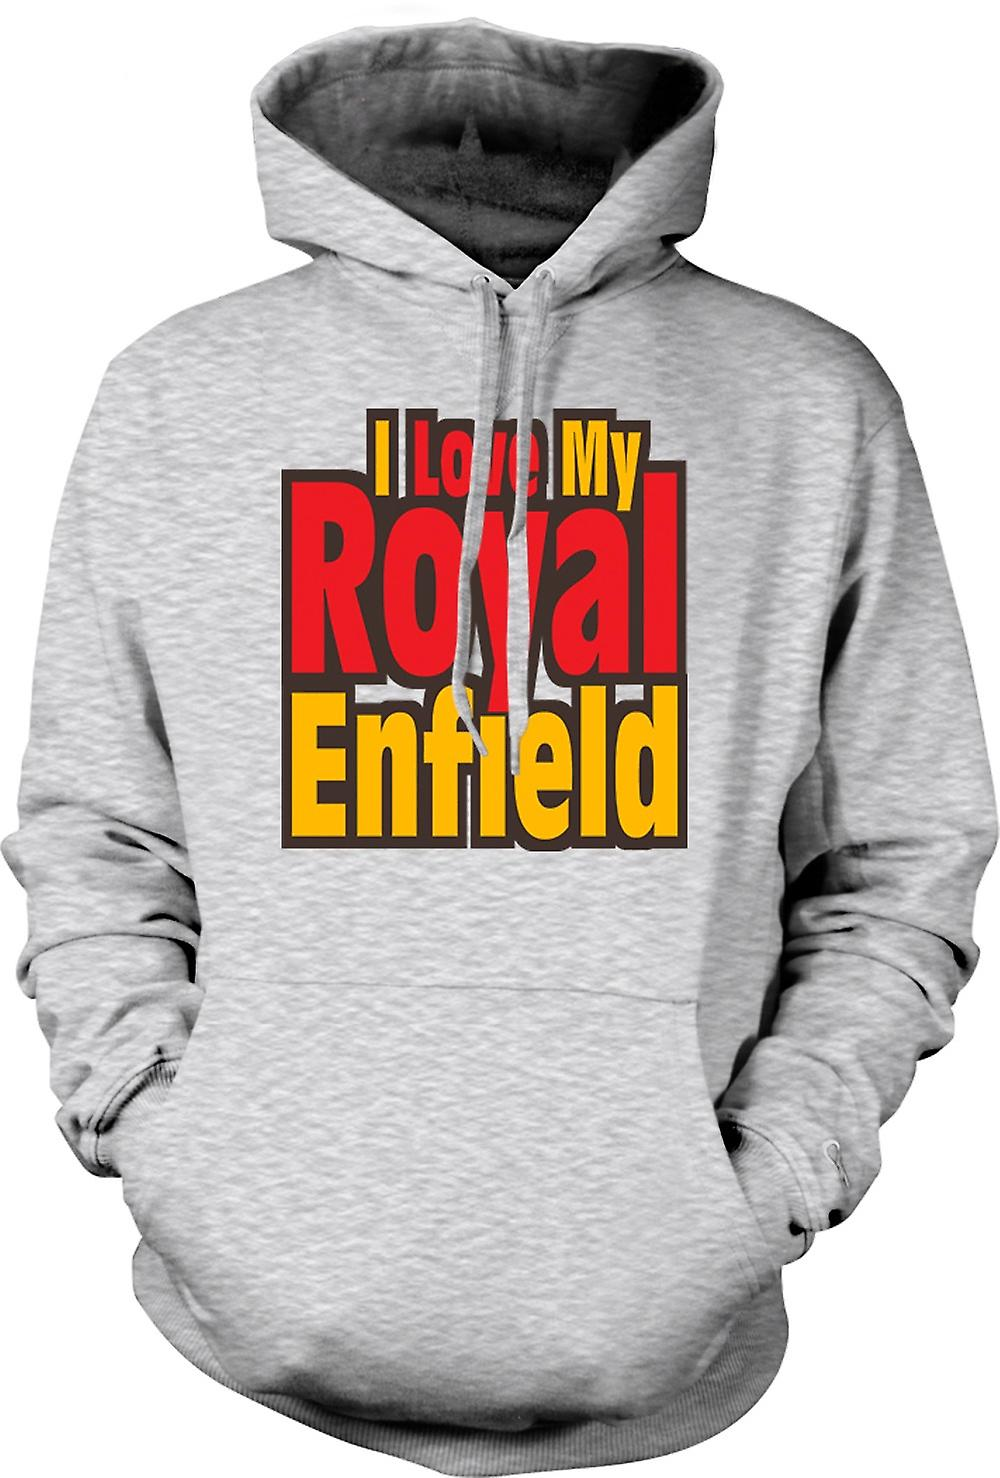 Mens Hoodie - I Love My Royal Enfield - Motorcycle - Biker